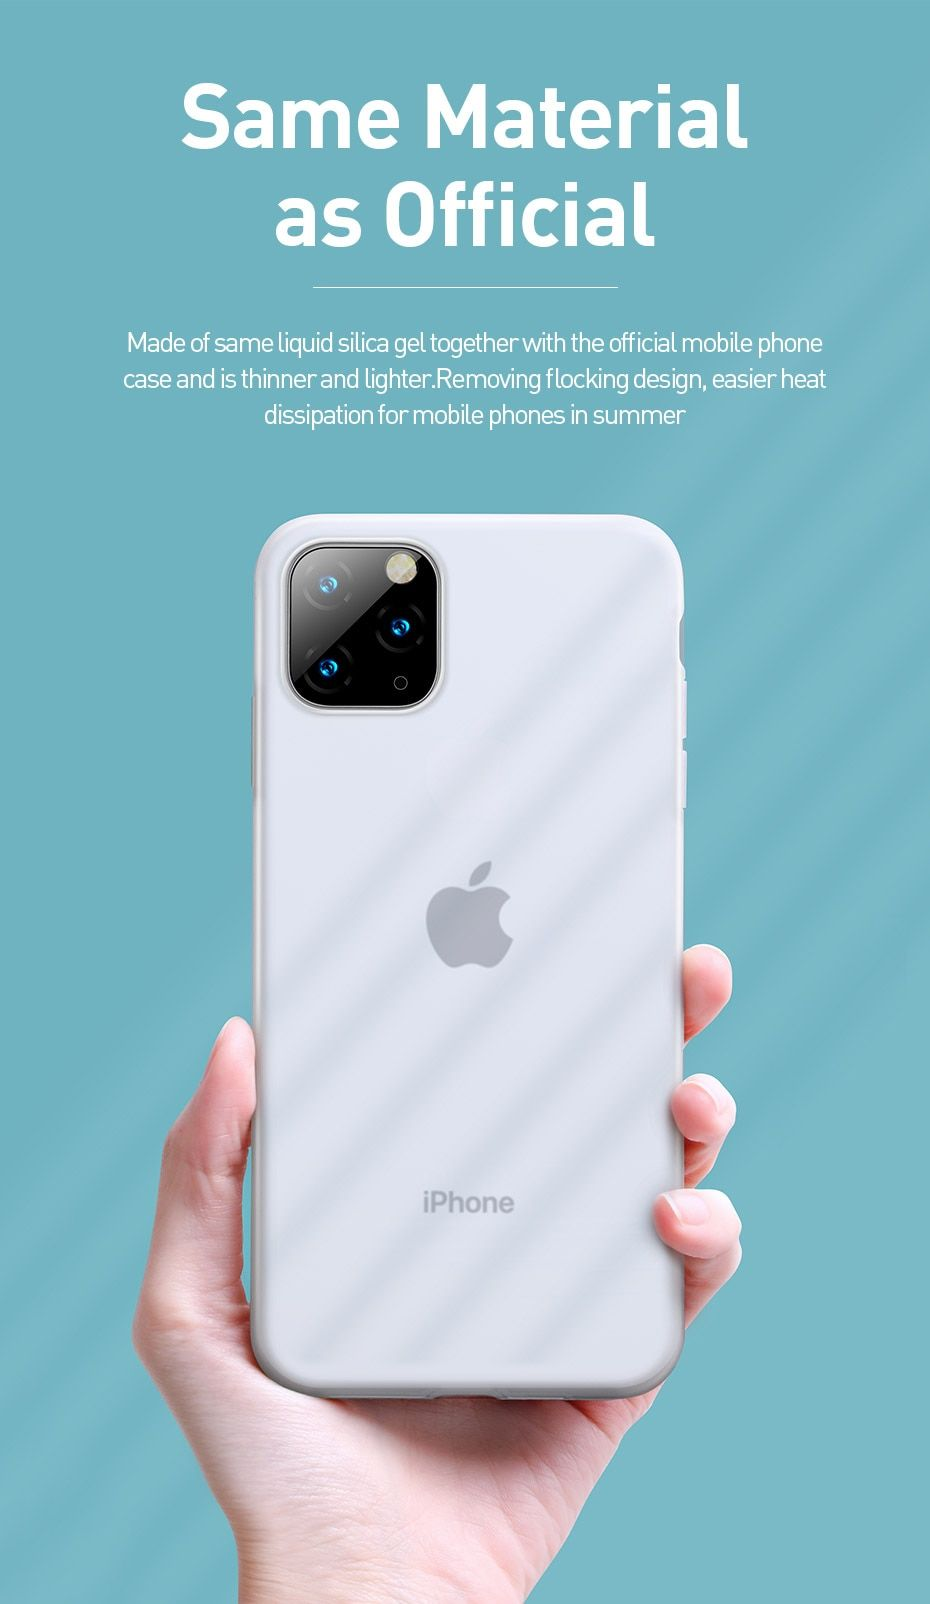 Liquid silicone back phone case for iphone 11 pro max이미지 포함